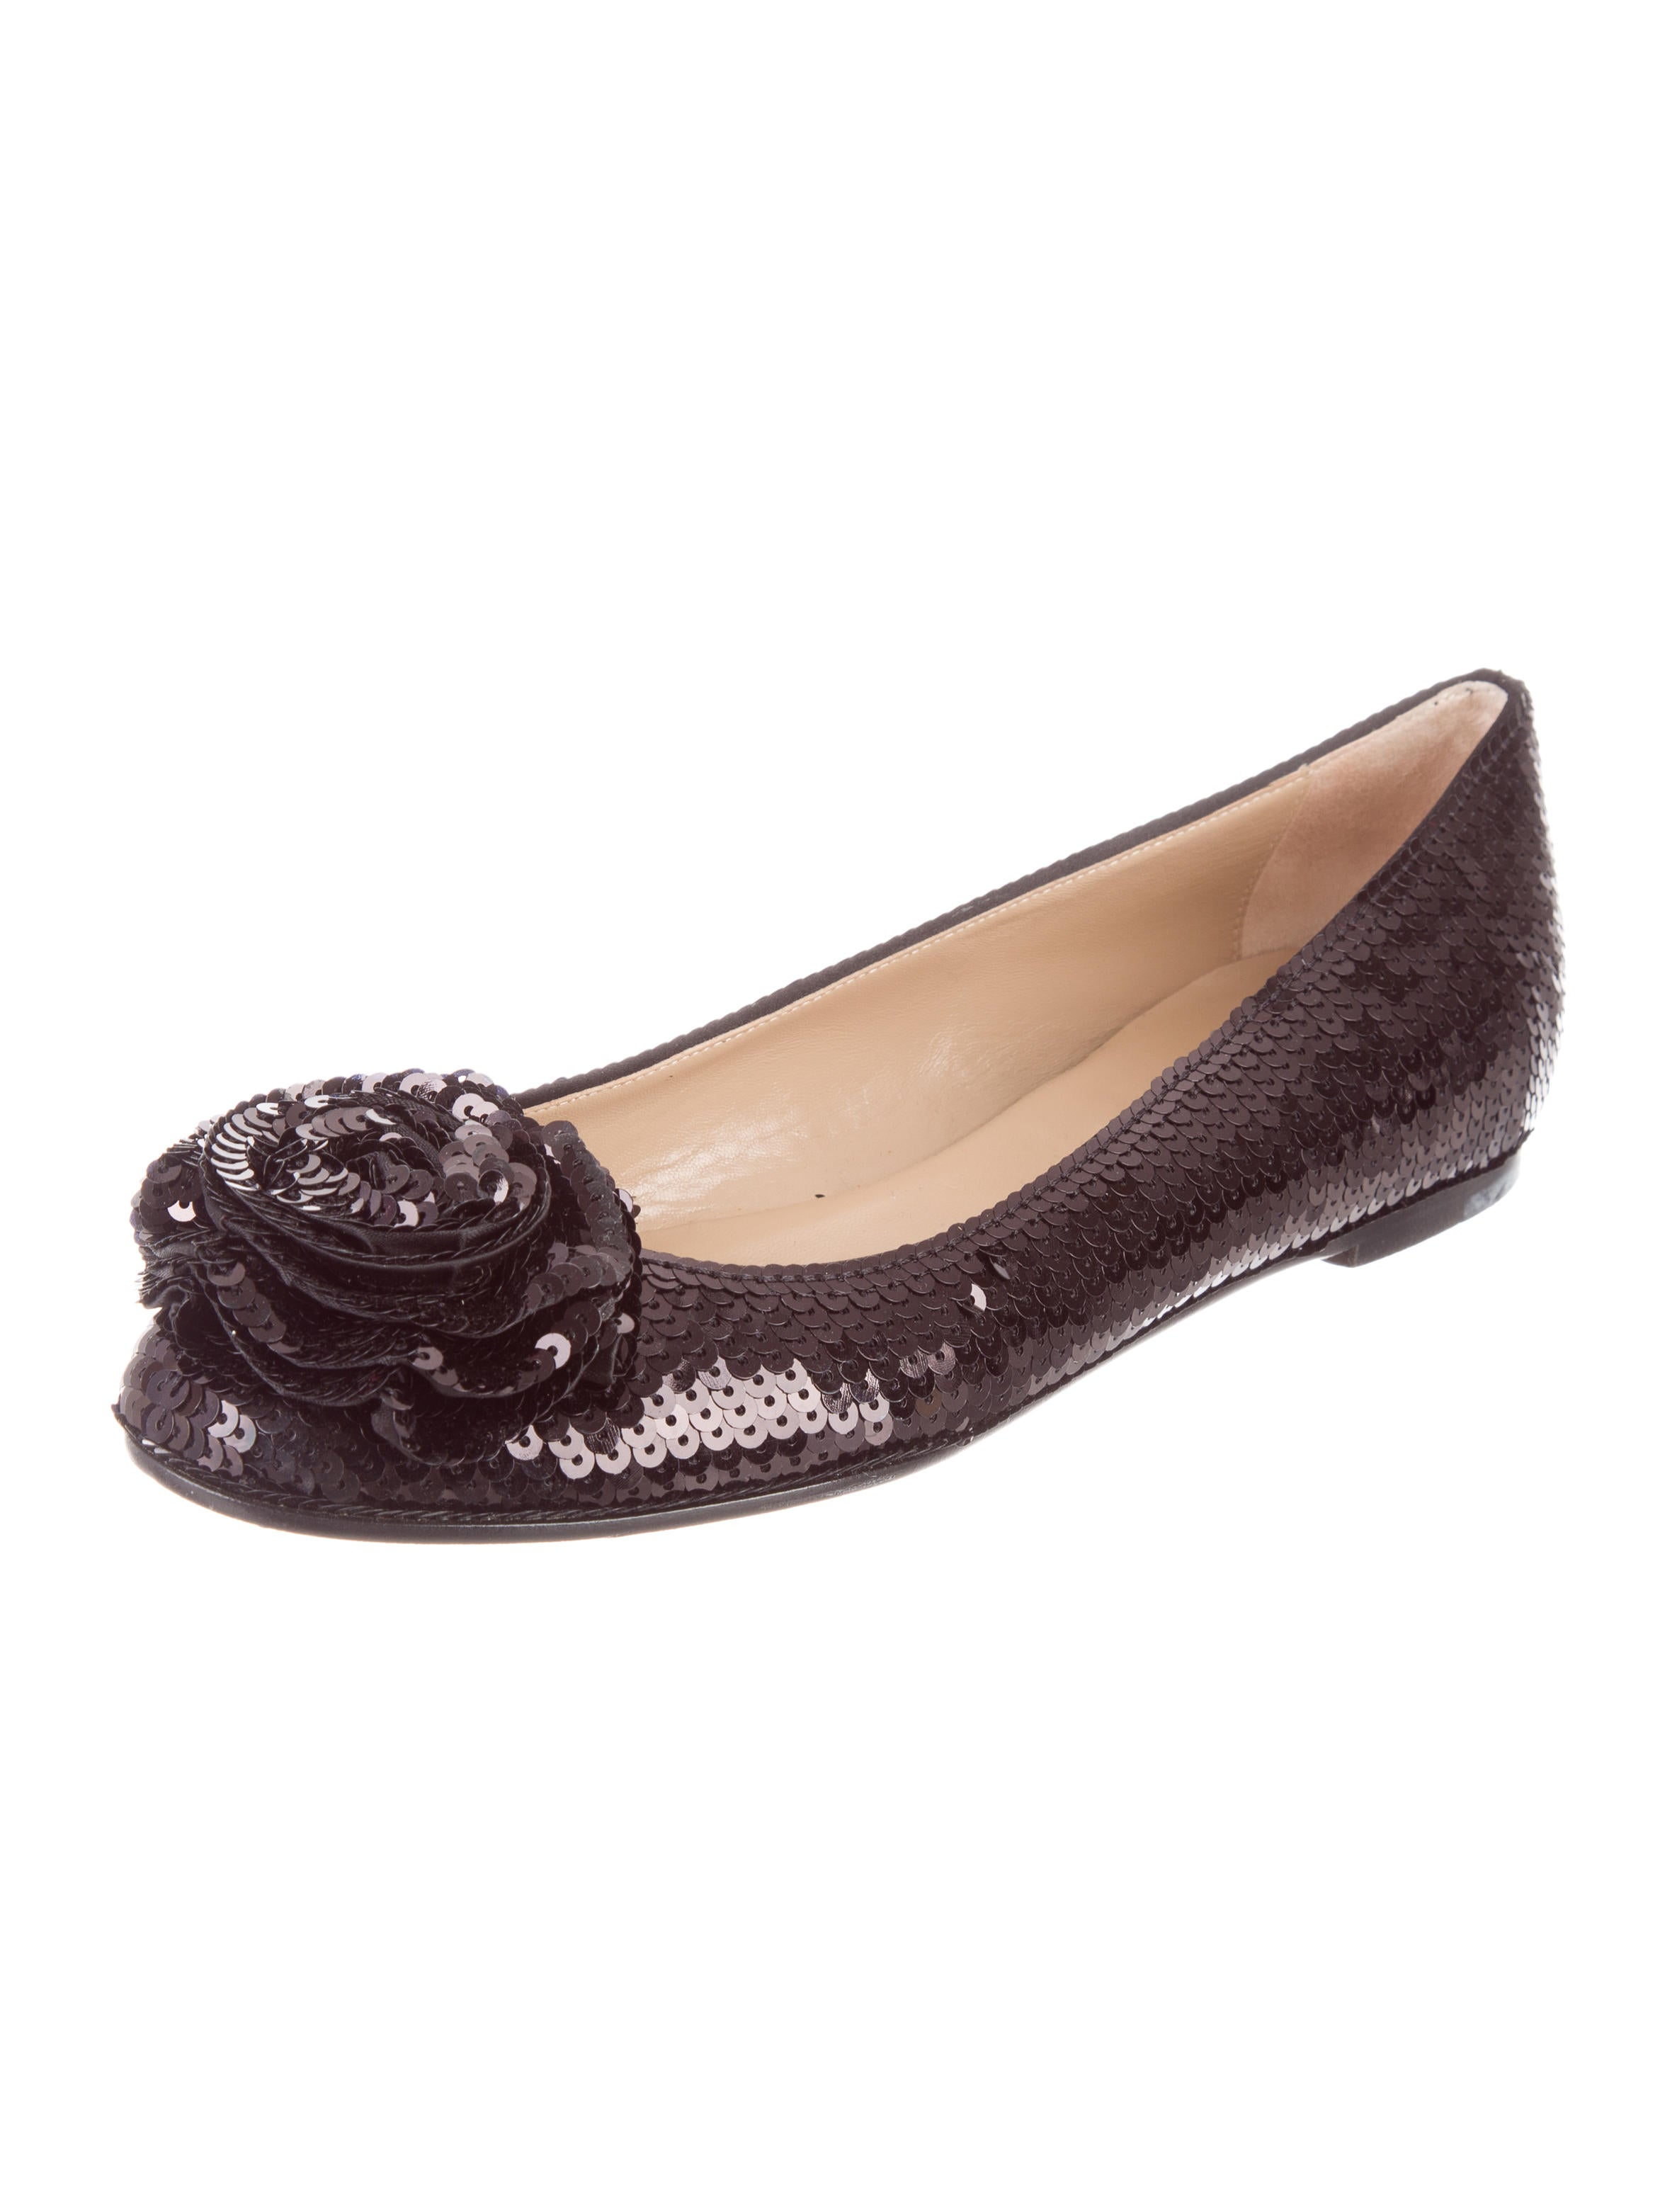 ASOS DESIGN Wide Fit Latch sequin pointed ballet flats. £ ASOS DESIGN Wide Fit Milestone loafer flat shoes in leopard. £ New Look Ballerina Flat. £ RAID Viera Black Snaffle Detail Flat Shoes. £ New Look Suedette Bow Ballet Pump. £ New Look Metal Ring Detail Loafers.